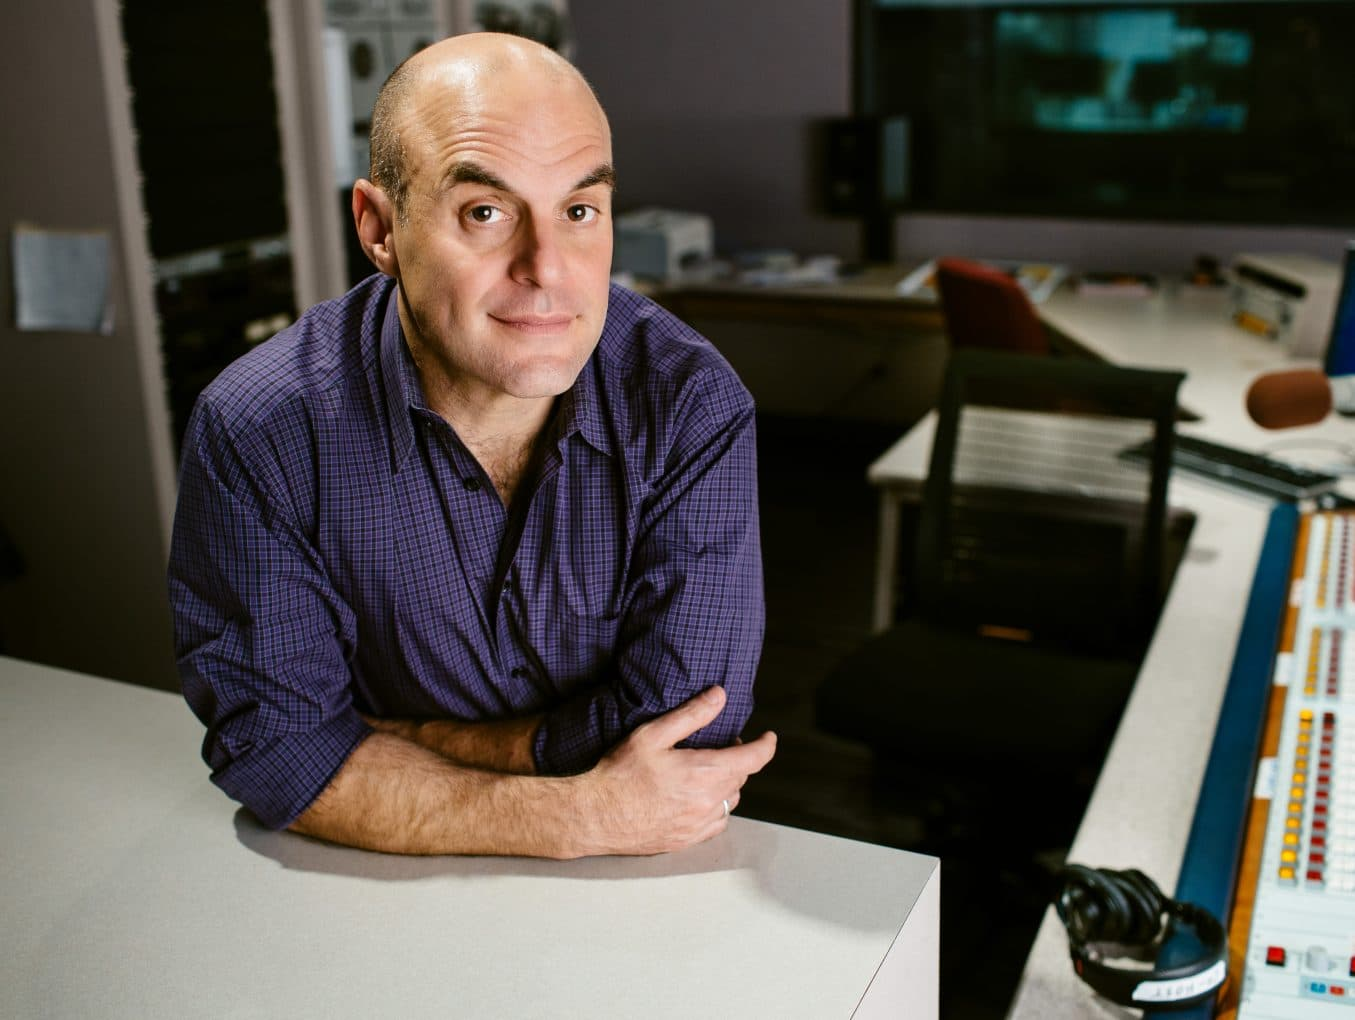 Peter Sagal: Finding 'Freedom' From Constant Distraction